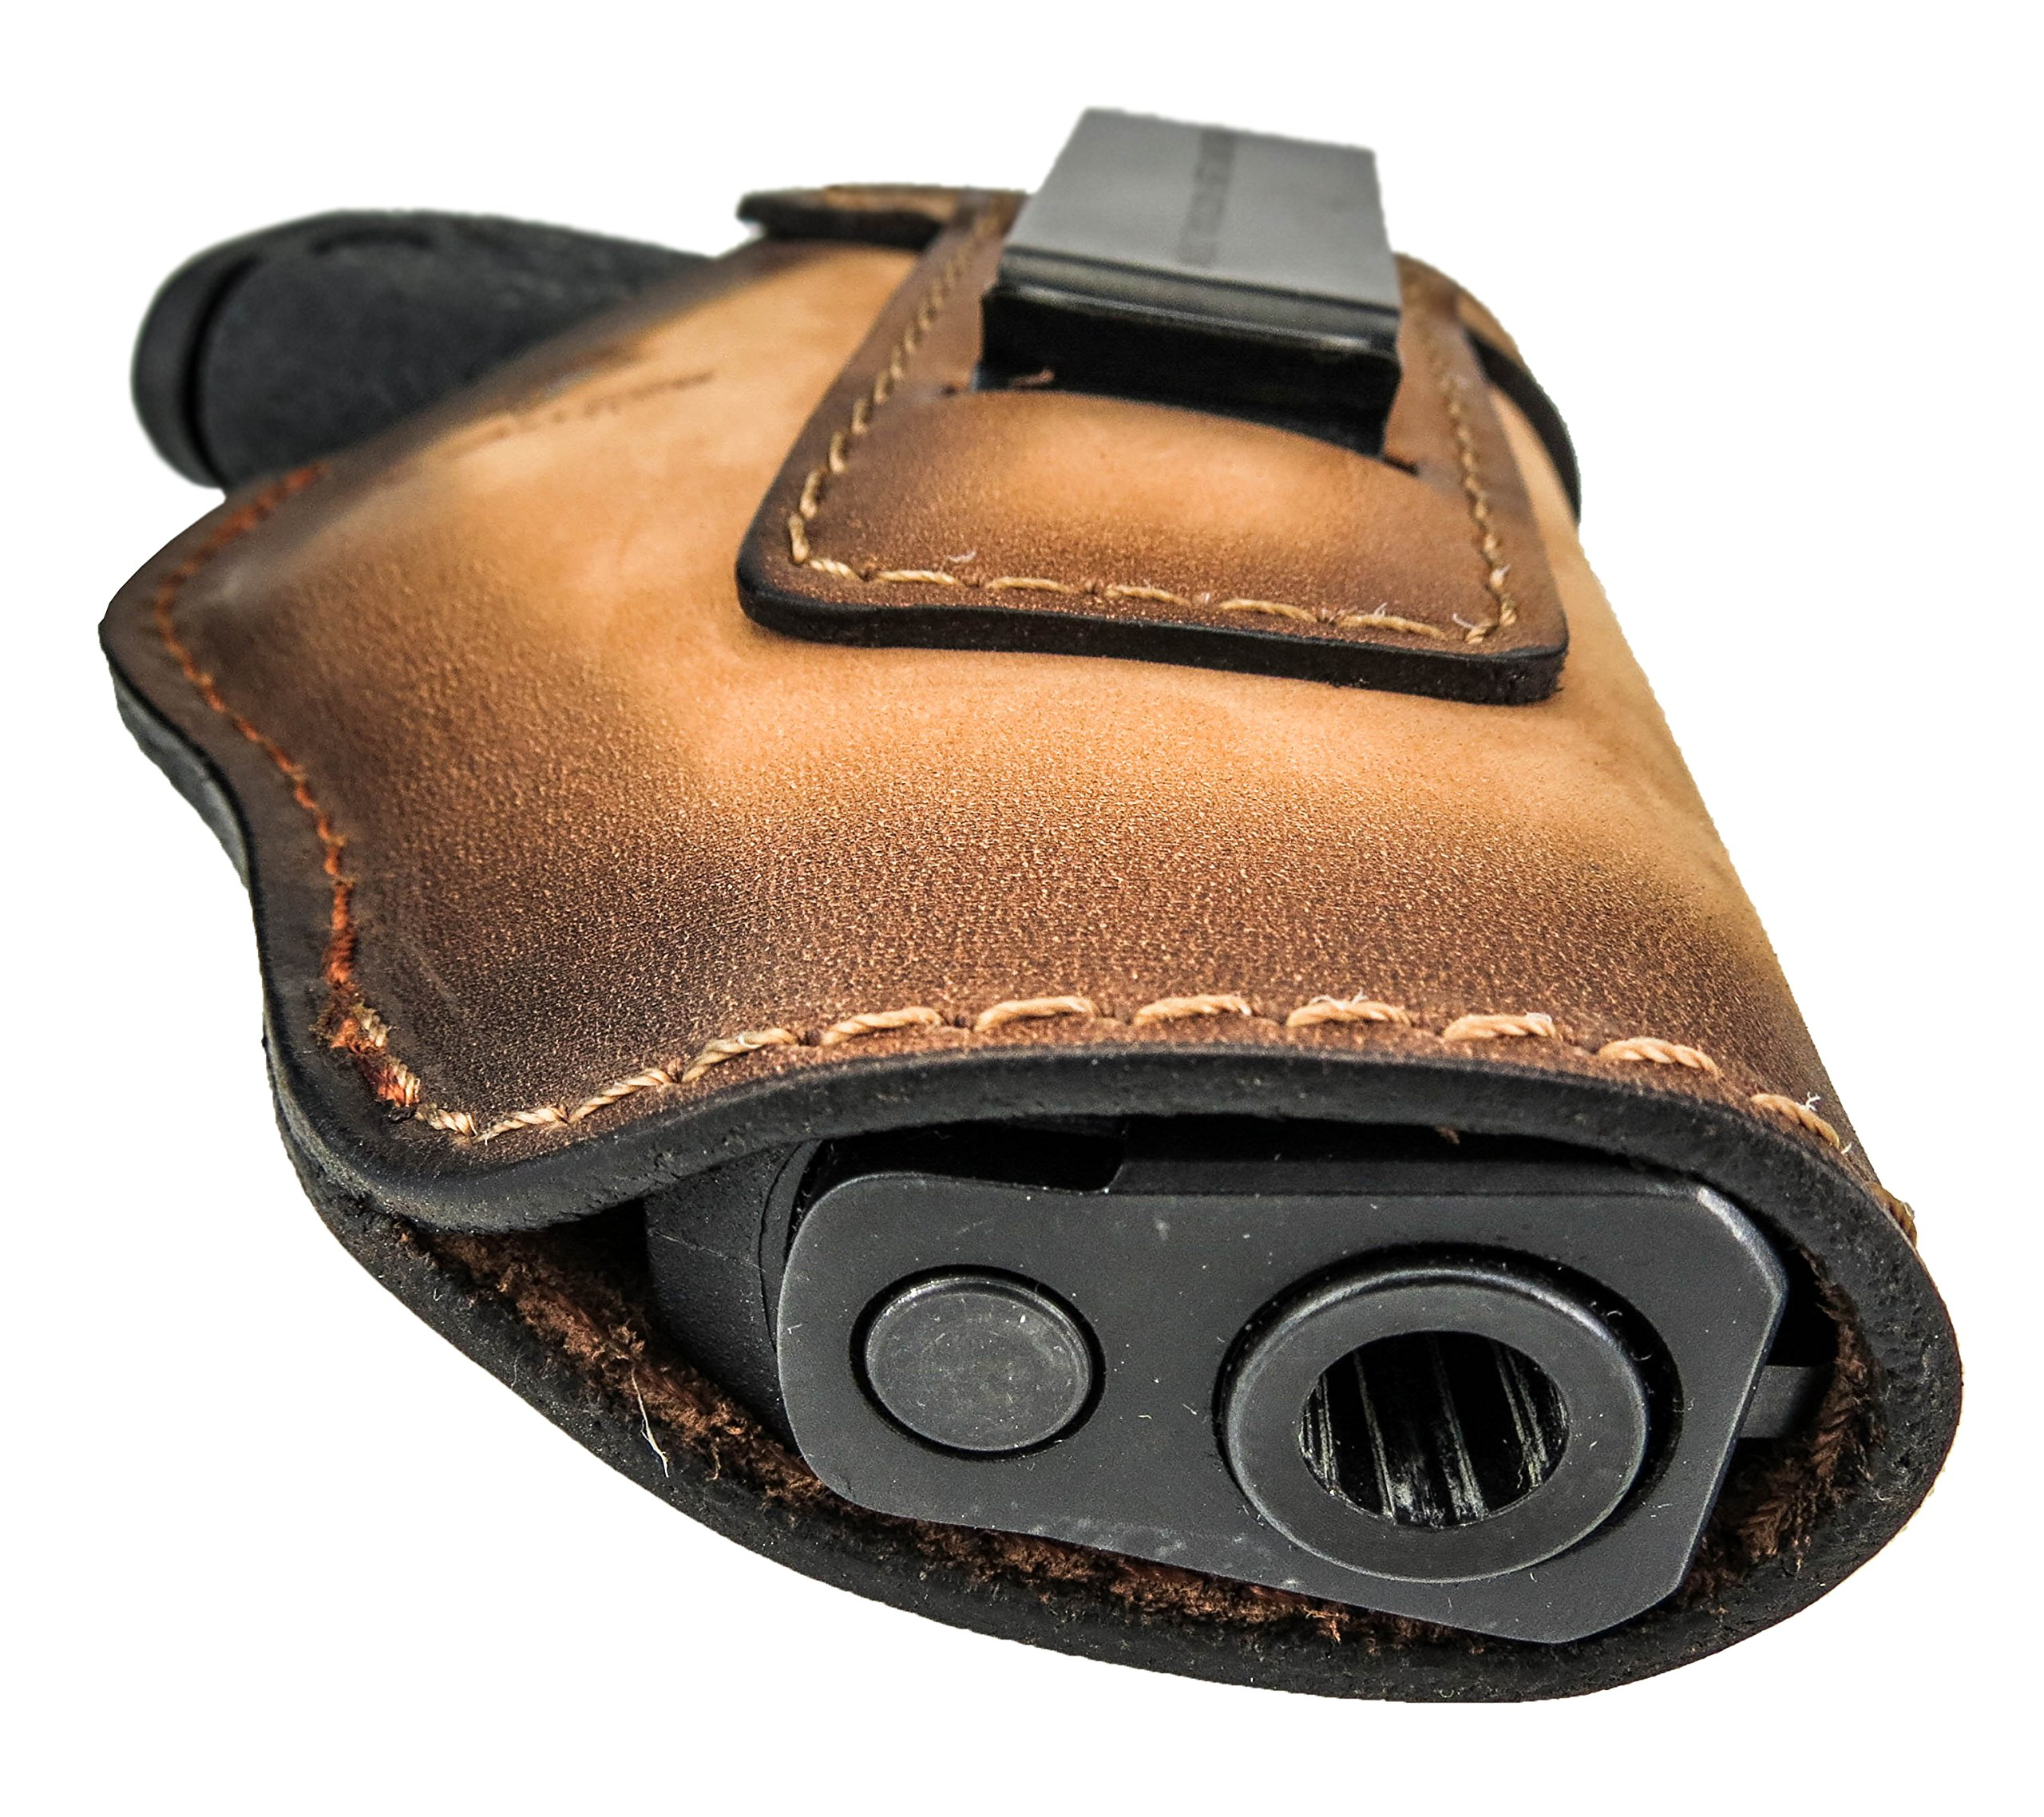 Relentless Tactical The Defender Leather IWB Holster - Made in USA - For S&W M&P Shield - GLOCK 17 19 22 23 32 33/Springfield XD & XDS/Plus All Similar Sized Handguns – Charred Oak – Right Handed by Relentless Tactical (Image #9)